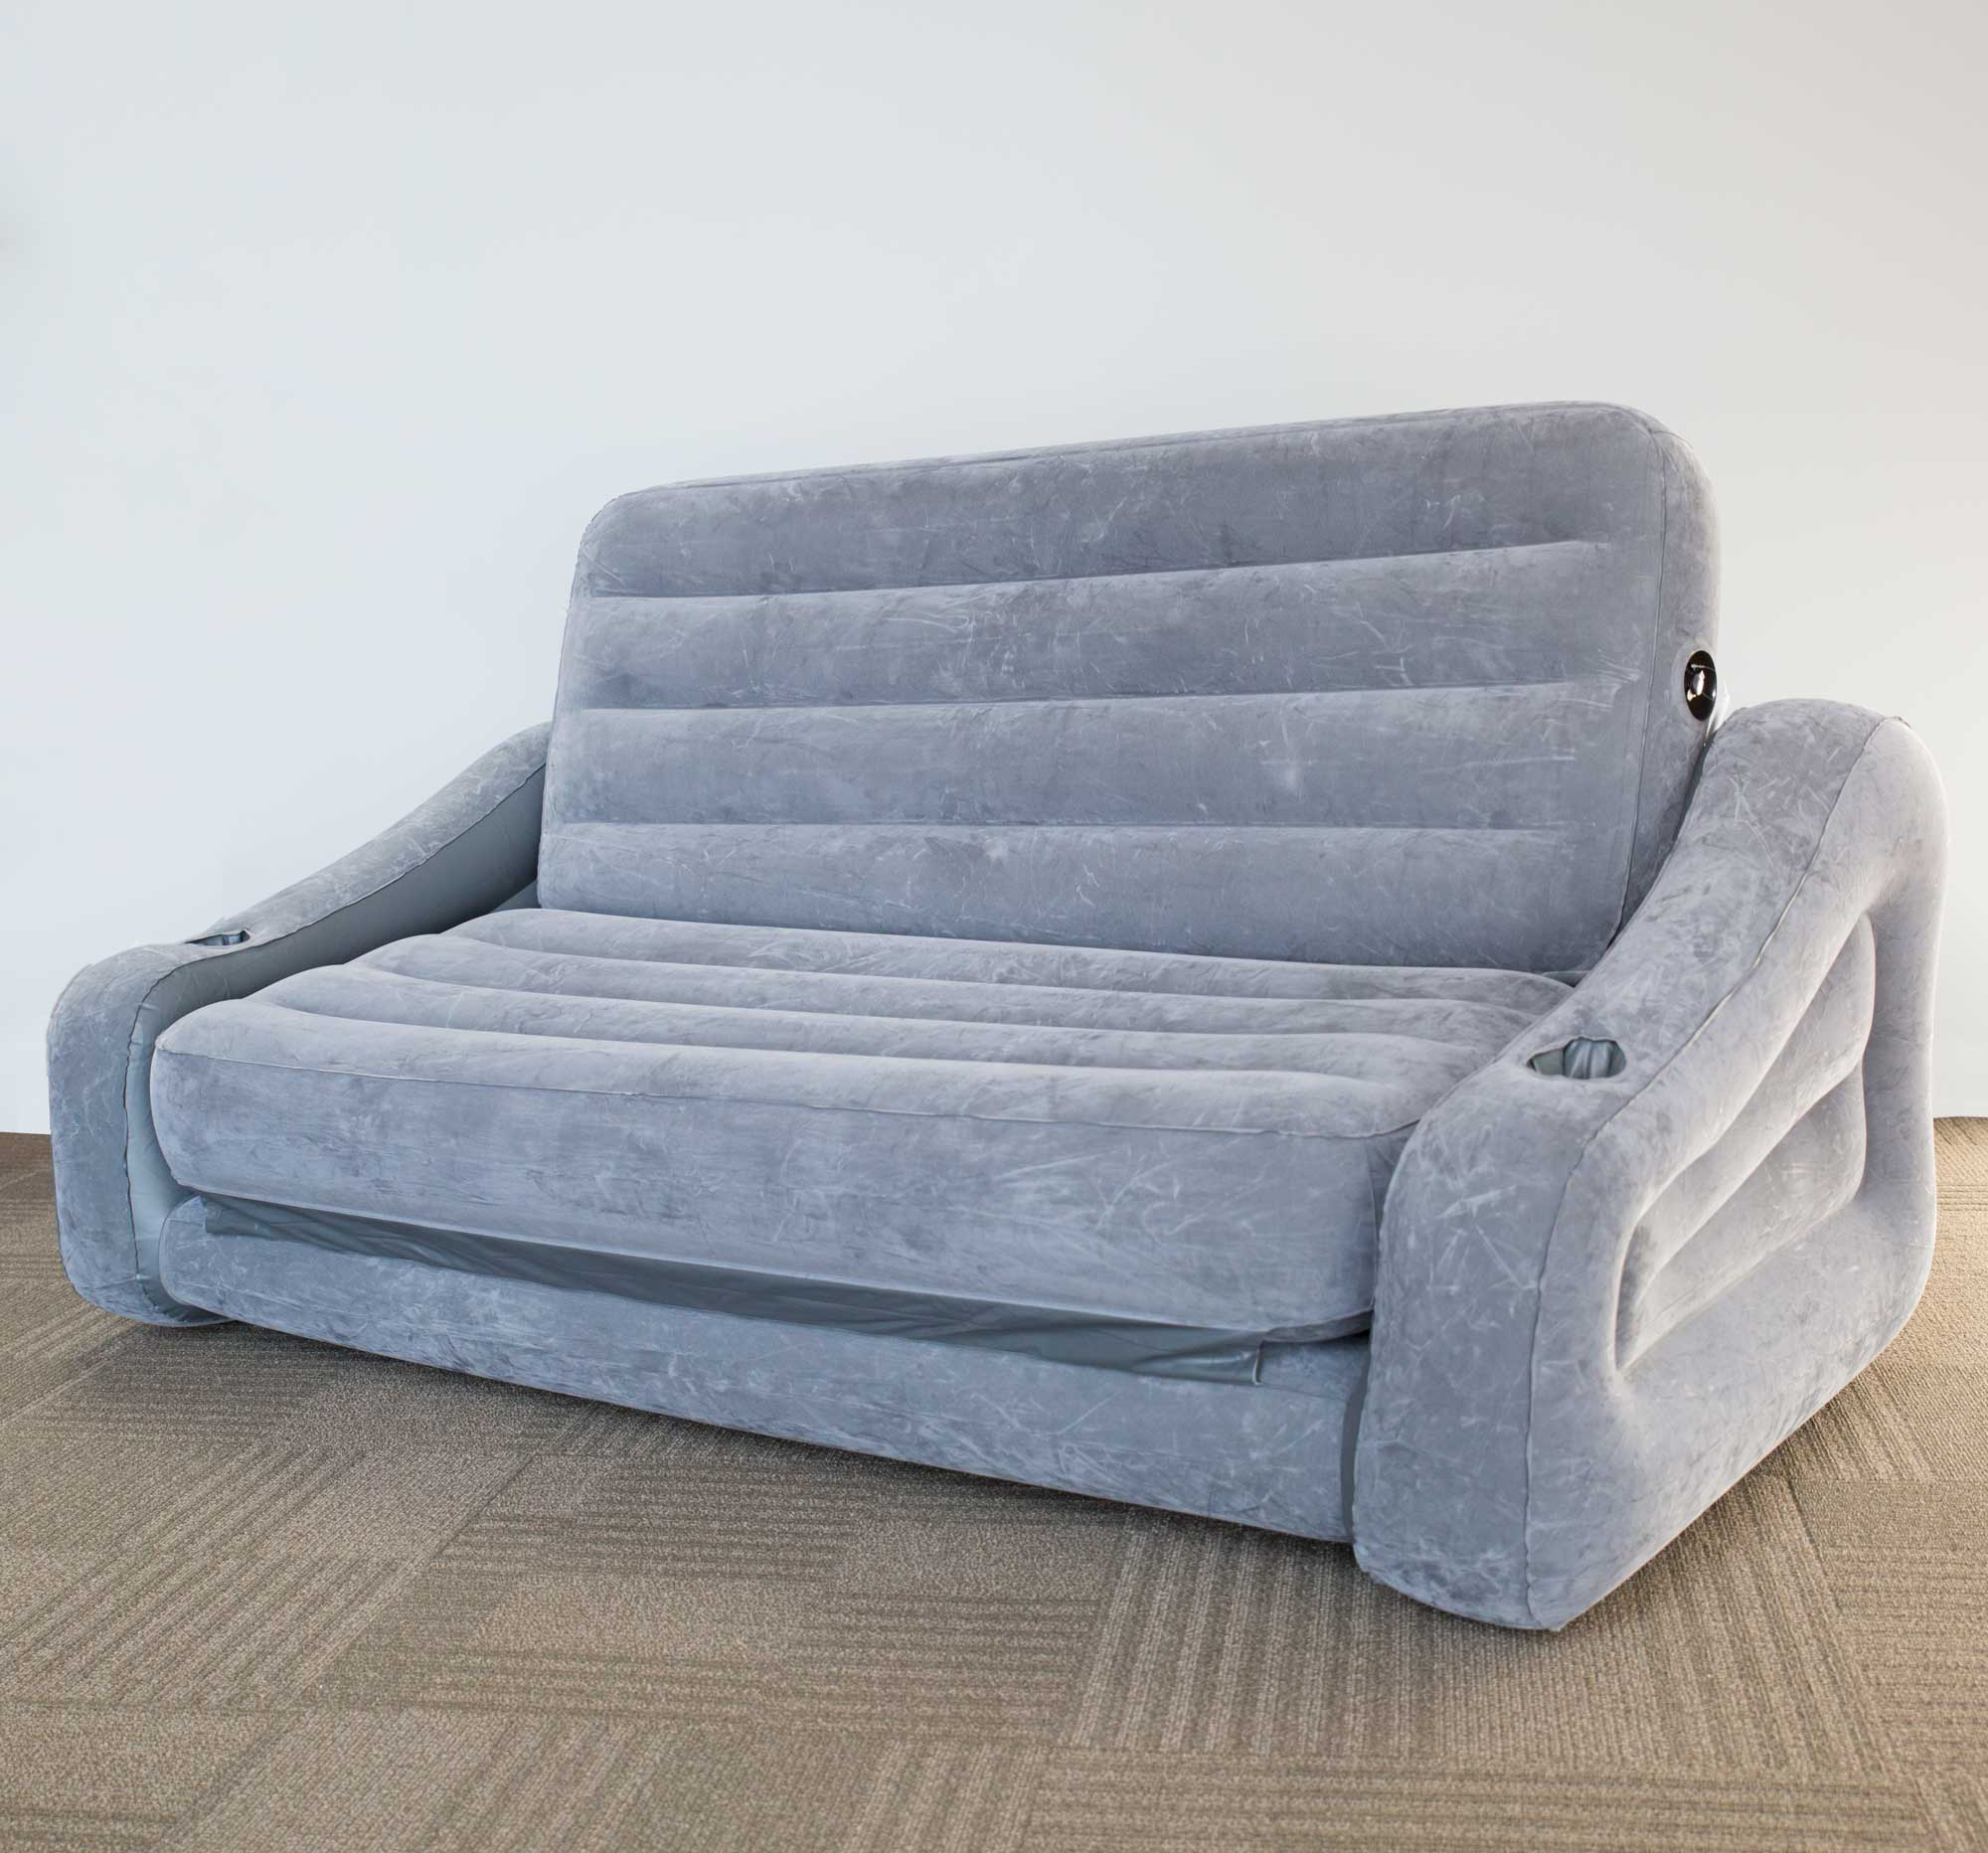 Intex Inflatable 2 In 1 Pull Out Sofa And Queen Air